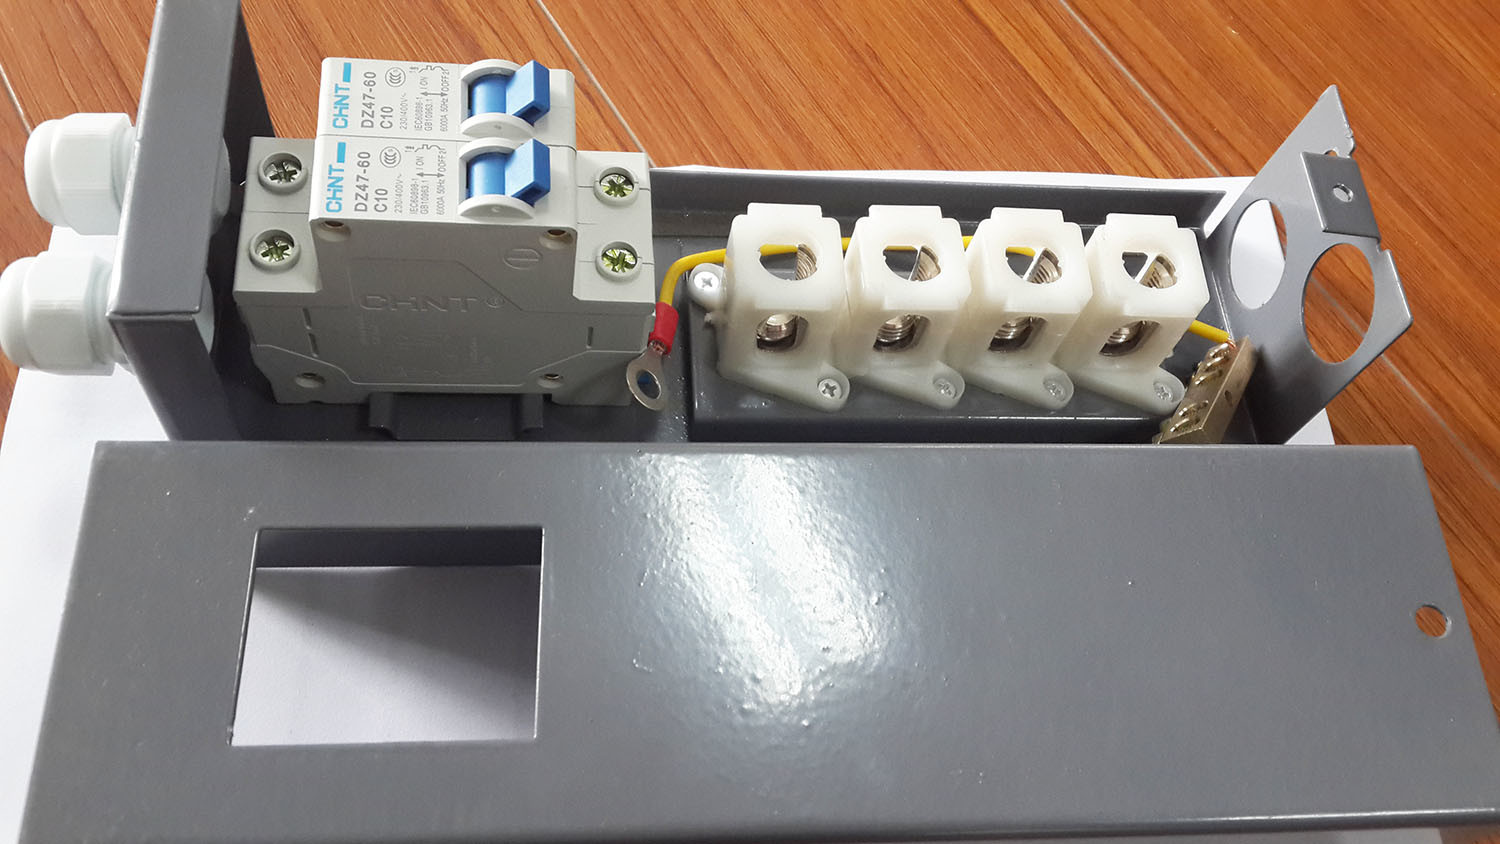 for Lighting Pole System, Cut-off Box, Ternimal Box, Fuse Box, Junction Box